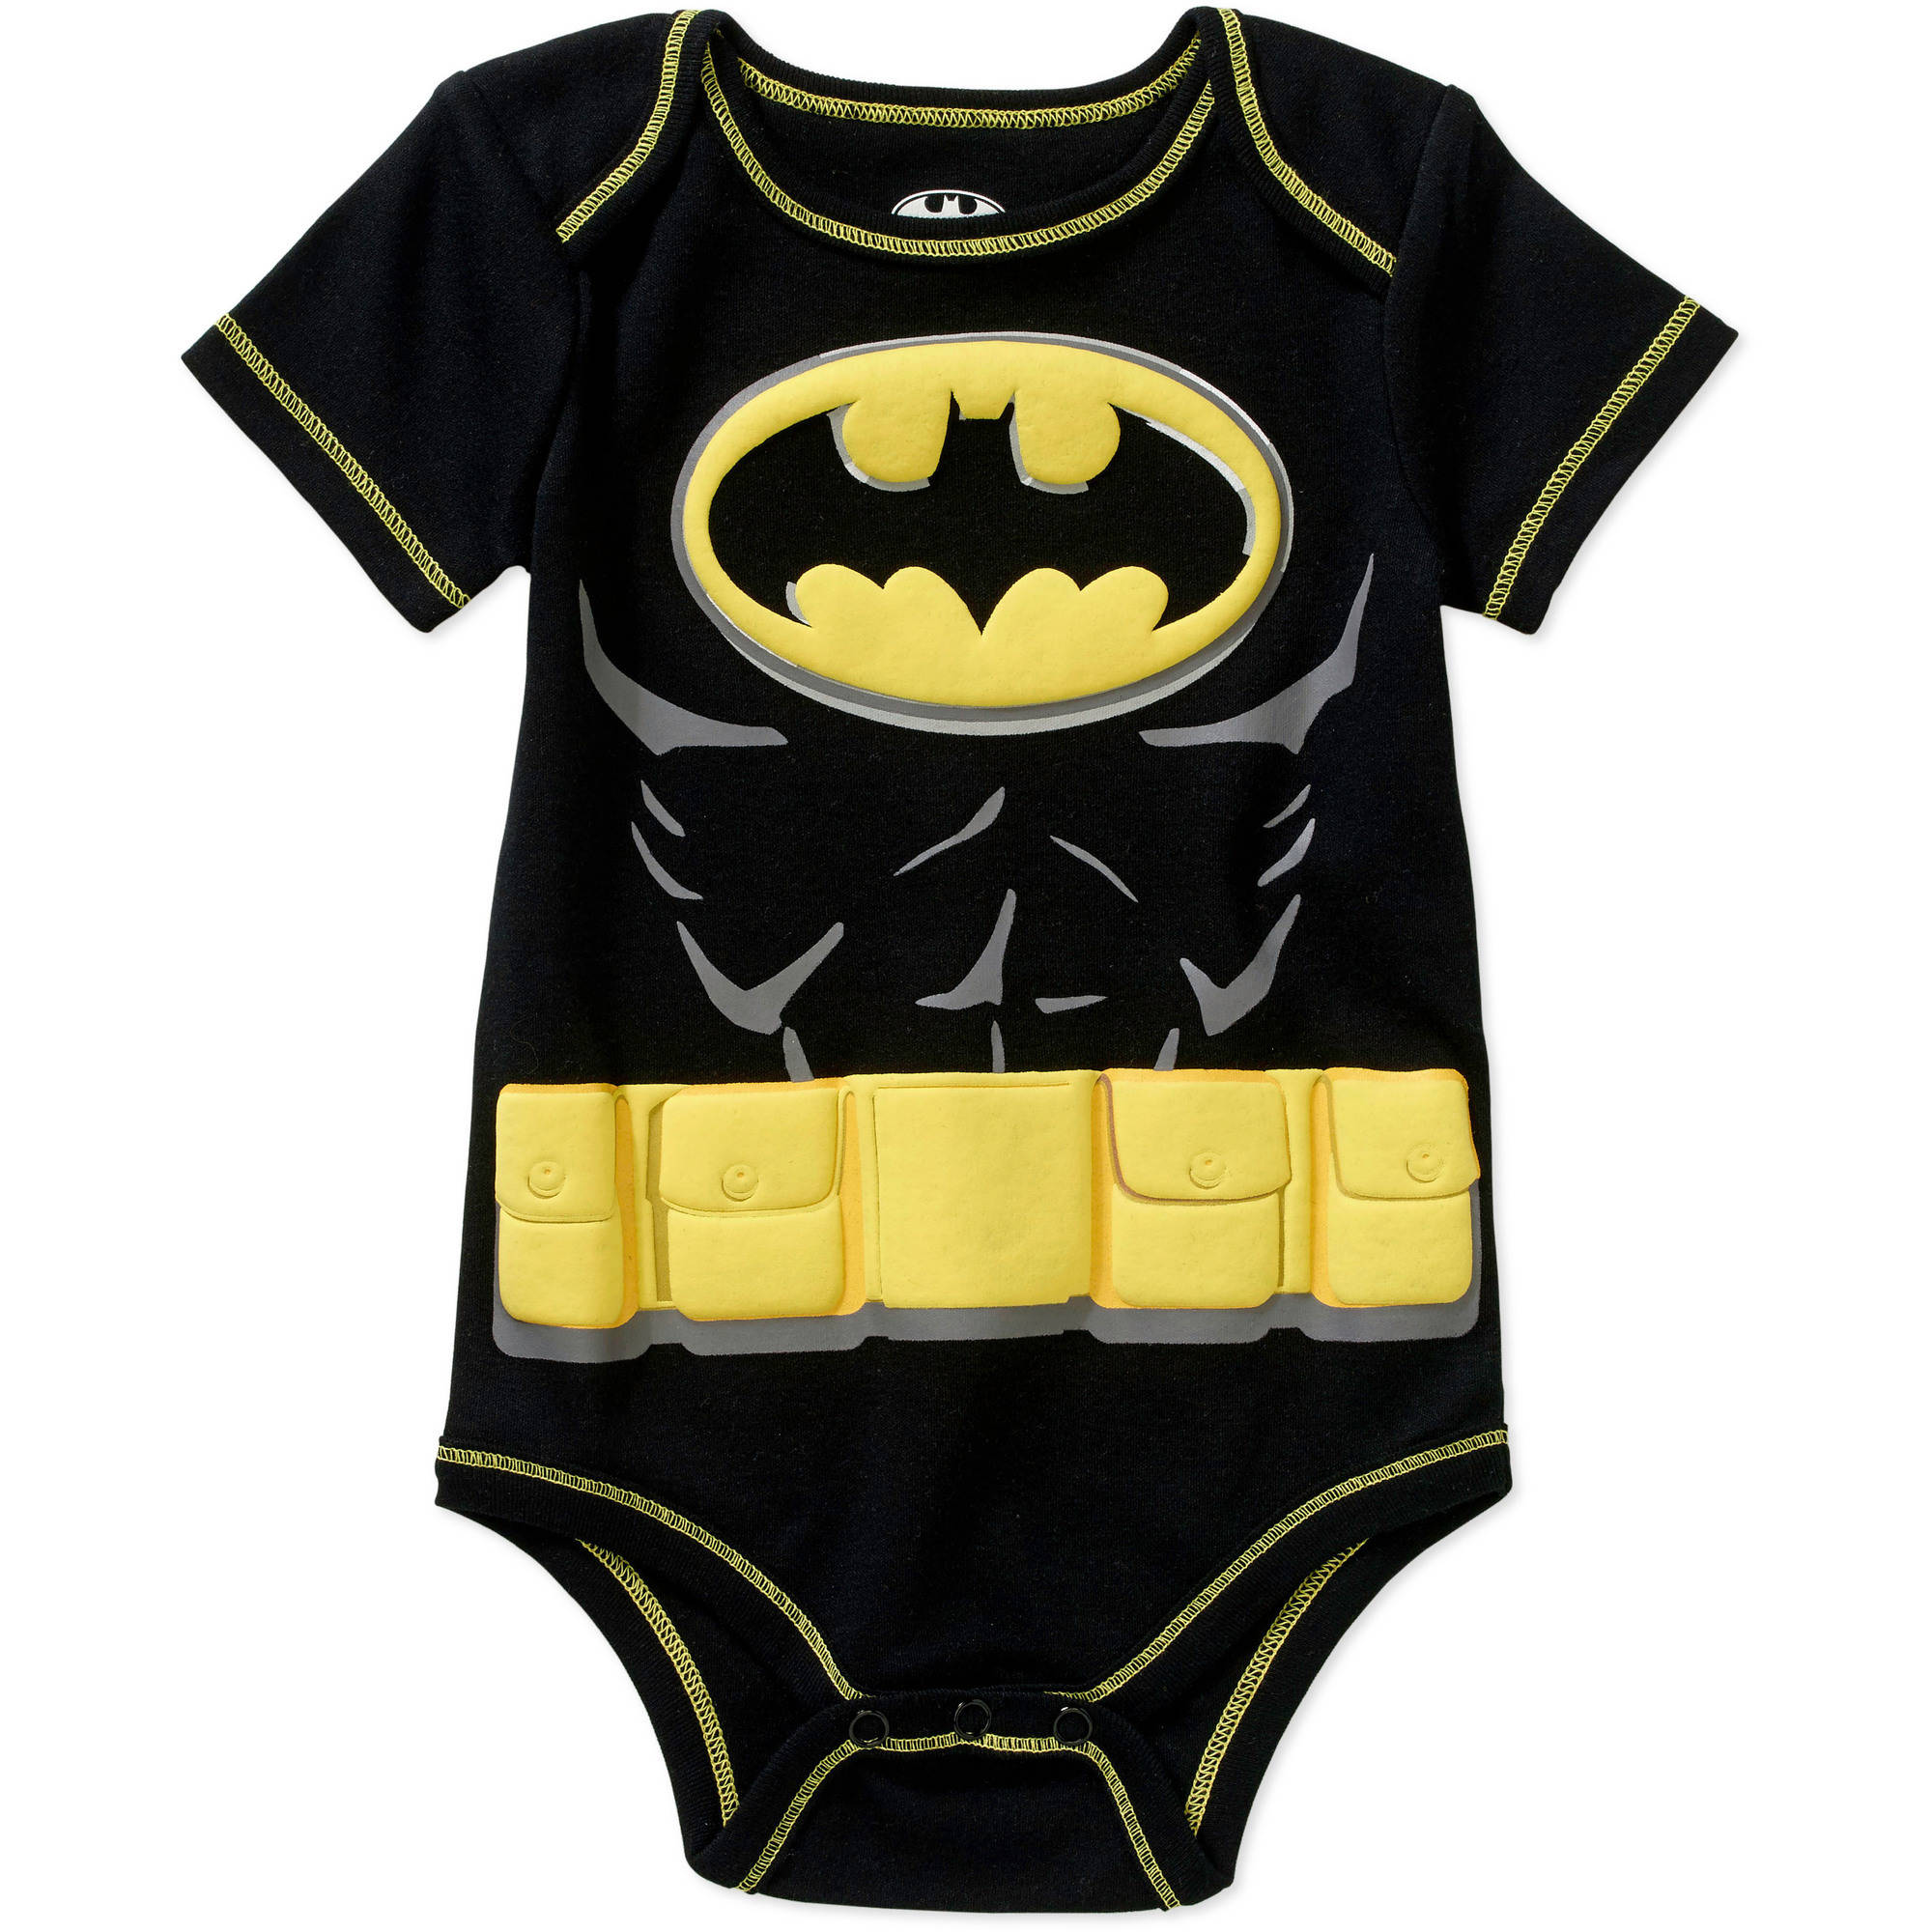 Batman Newborn Baby Boy Bodysuit